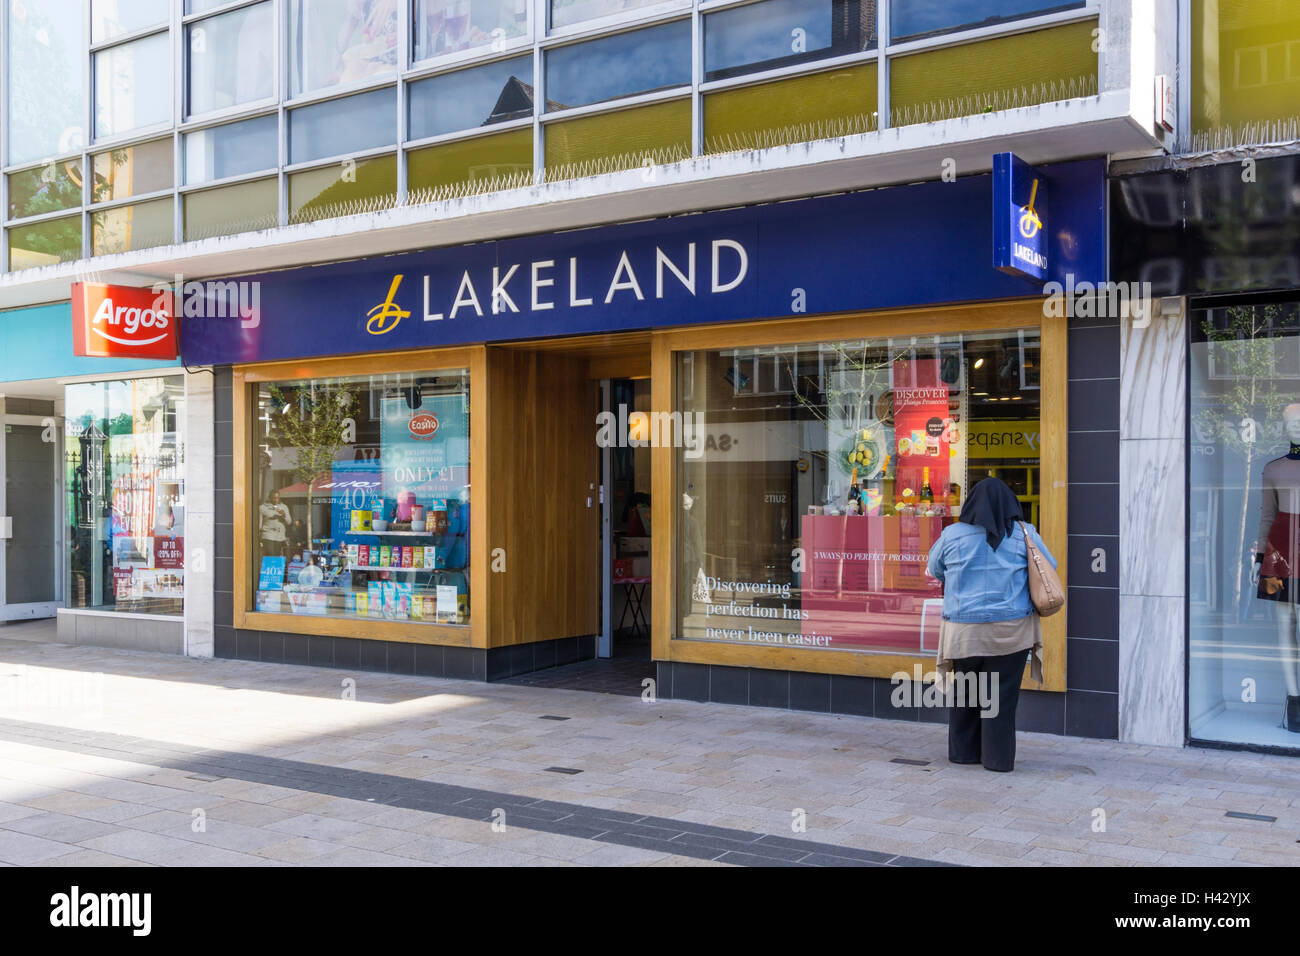 A Lakeland kitchenware shop in Bromley, Kent. - Stock Image